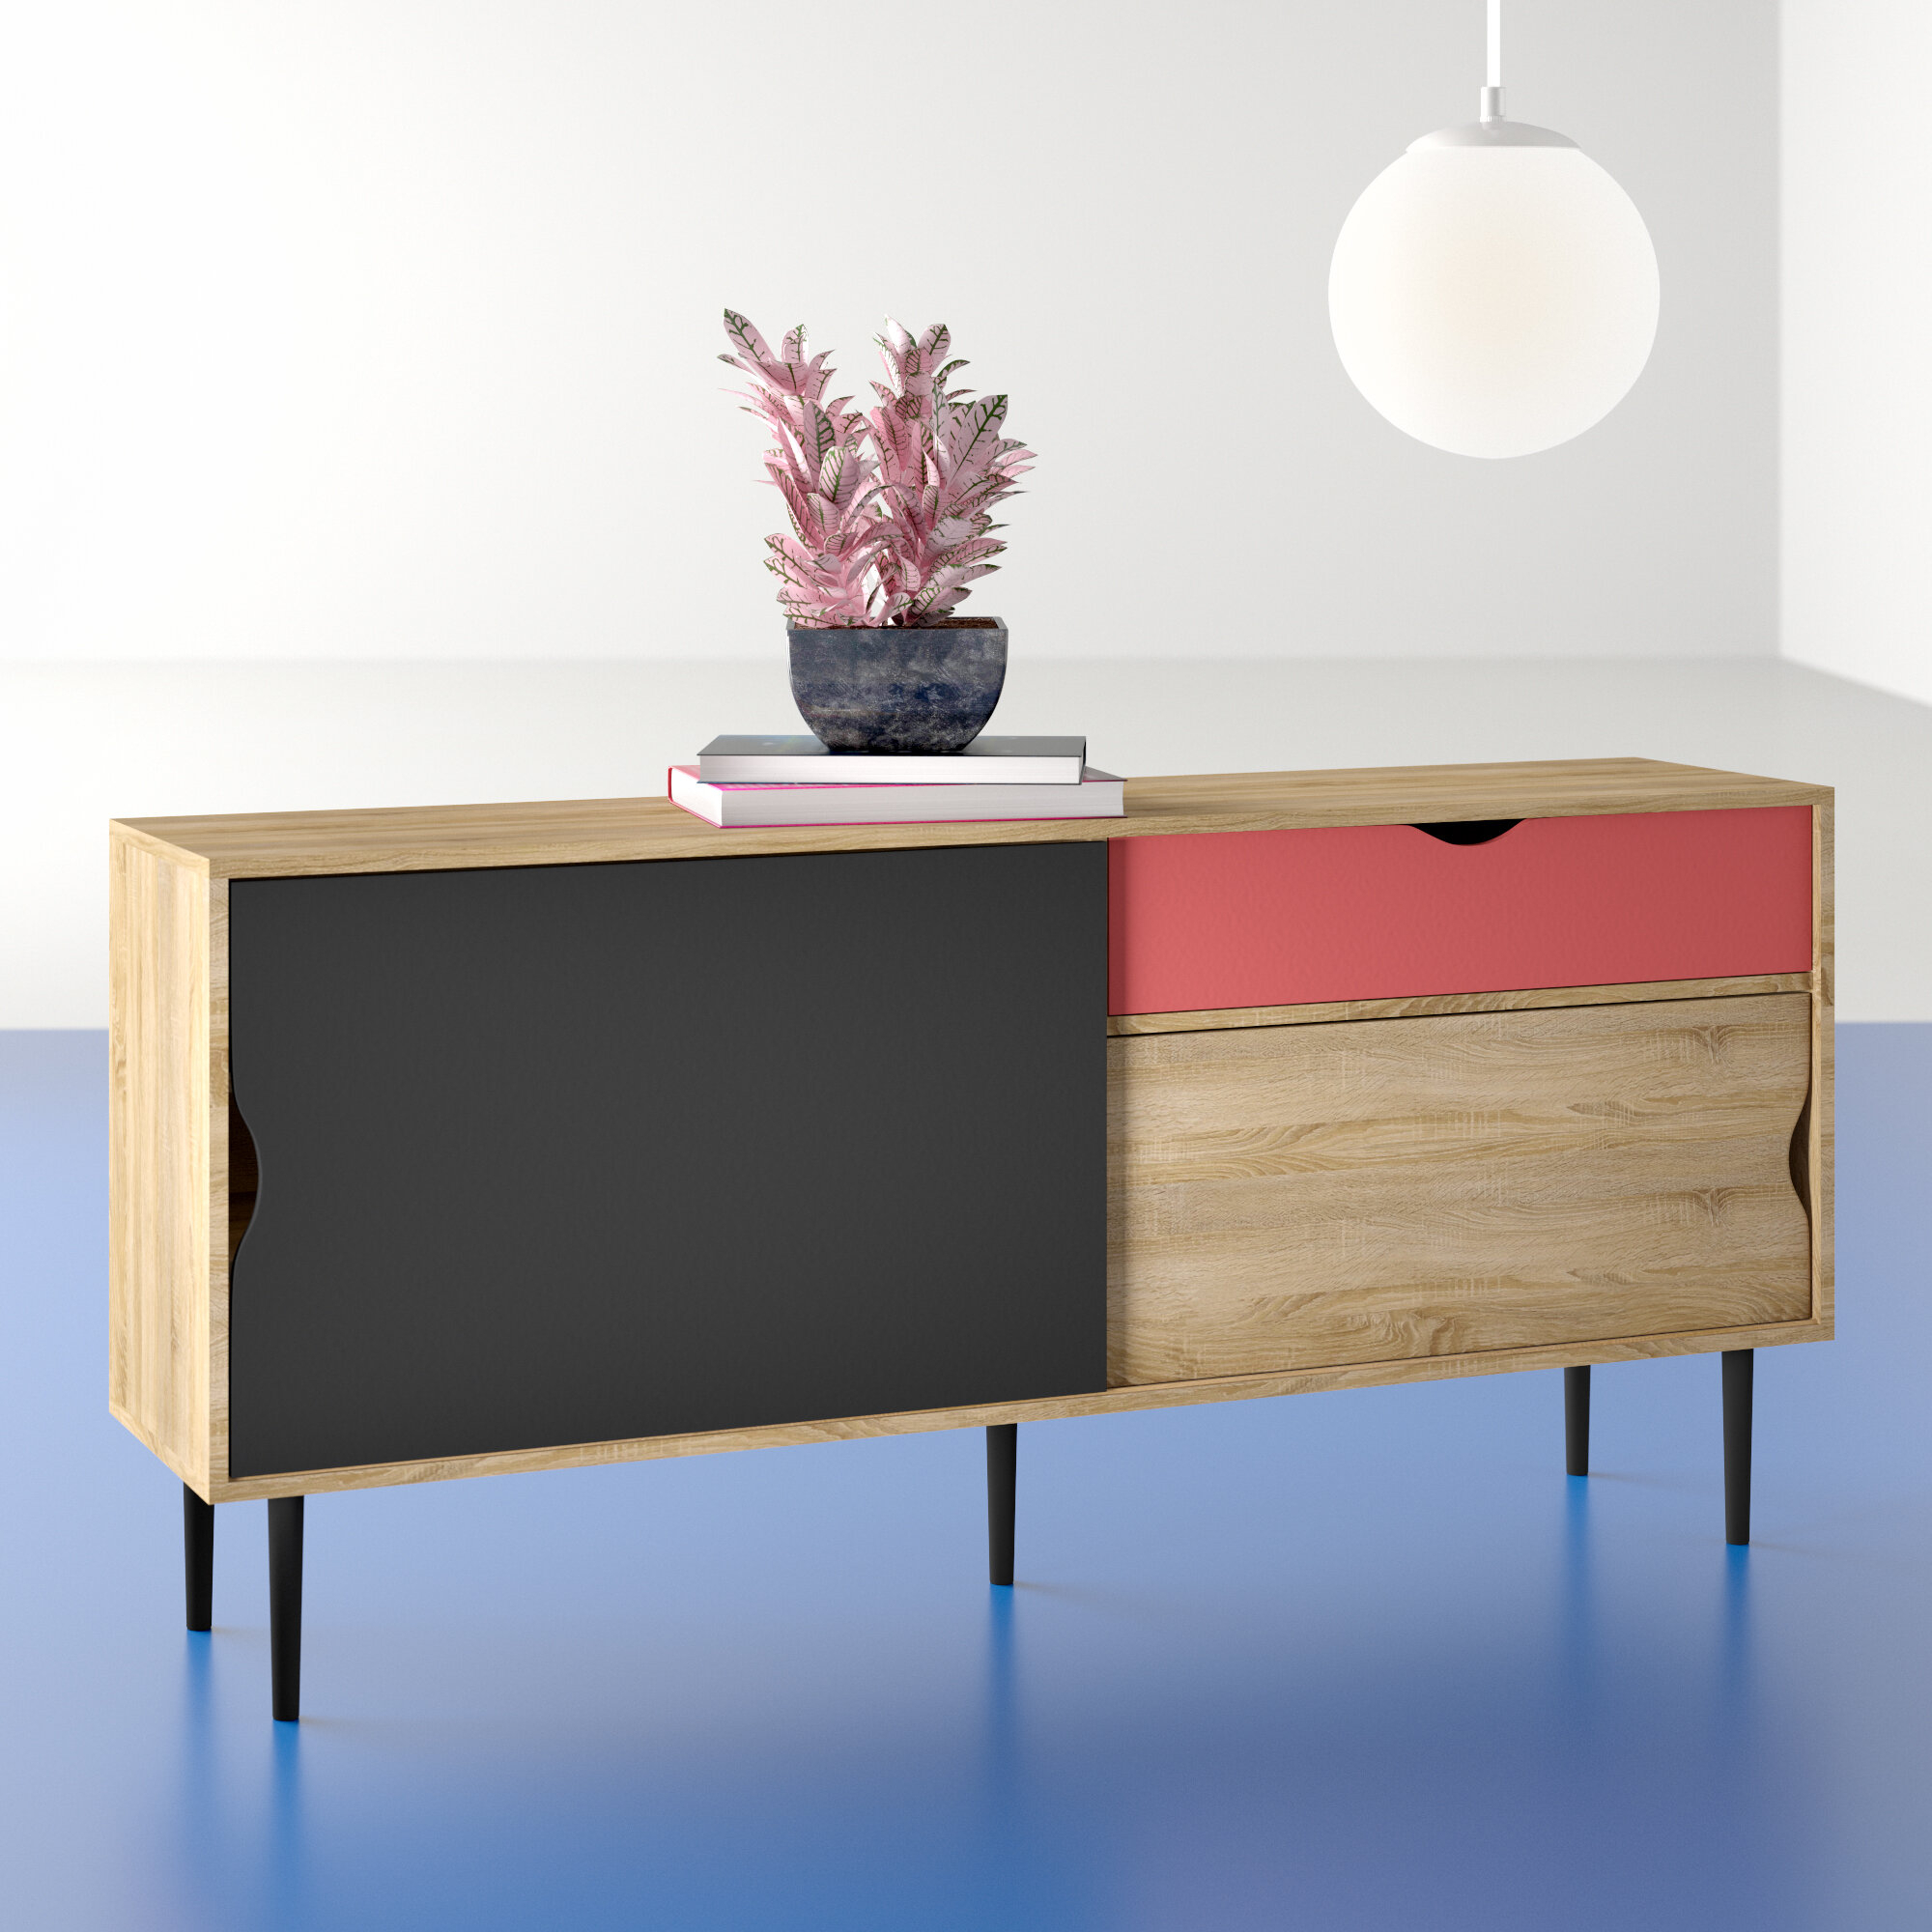 Dovray Buffet Table Intended For Mid Century Retro Modern Oak And Espresso Wood Buffets (Photo 21 of 30)